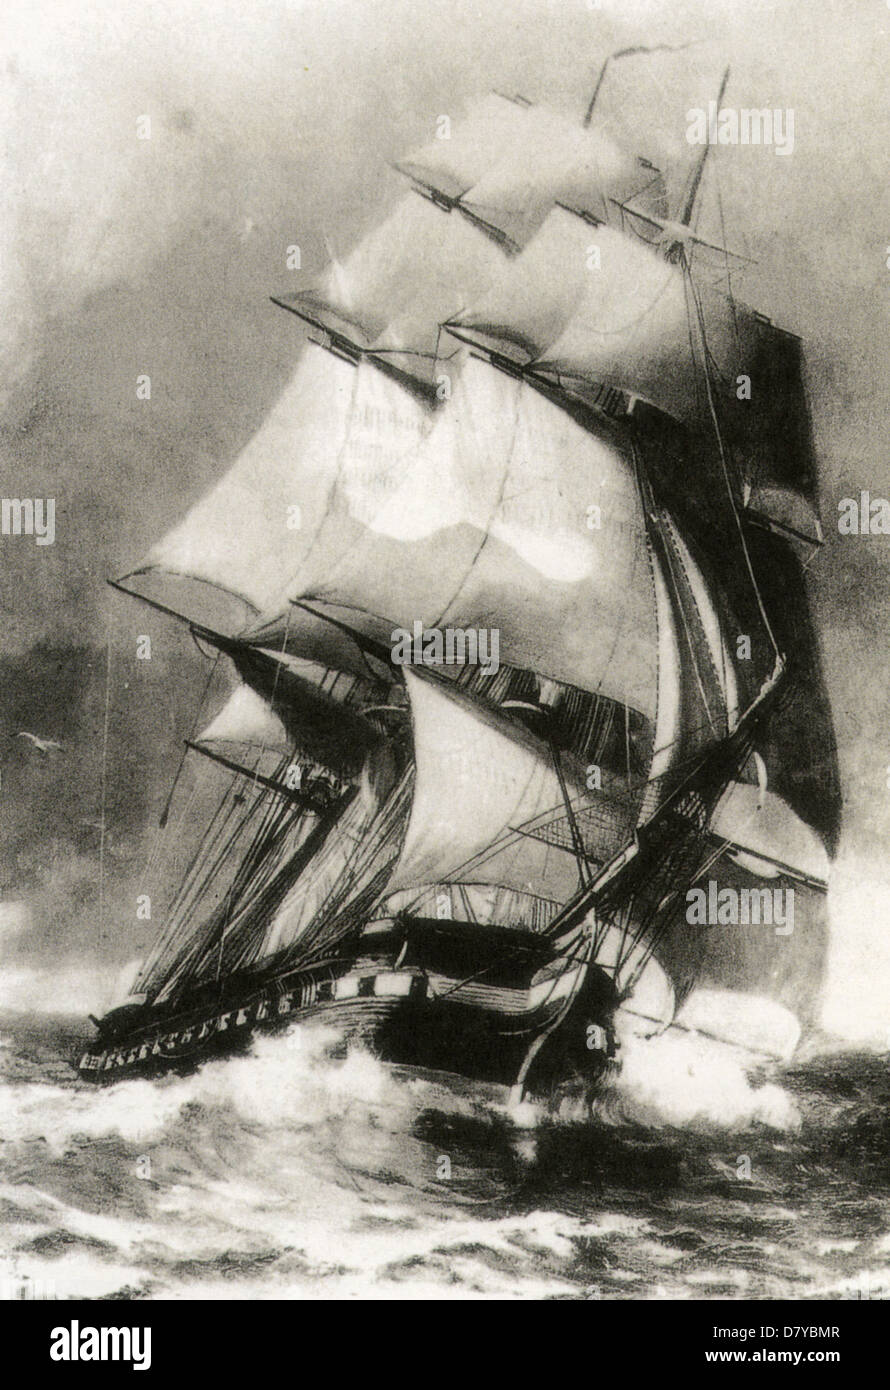 USS CONSTITUTION heavy frigate of 44 guns launched from Boston in 1797 - Stock Image